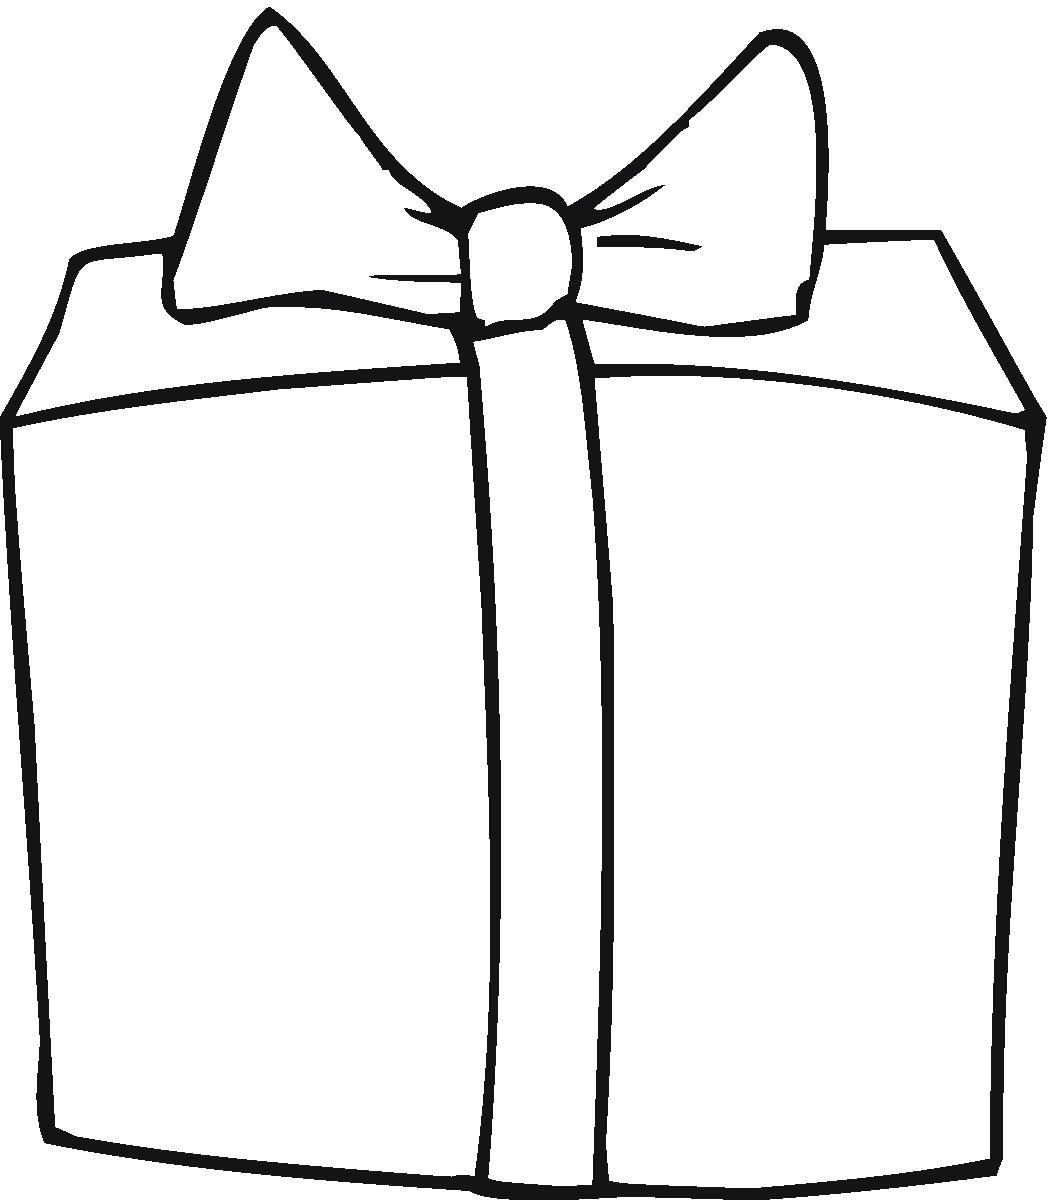 Black And White Outline Design Of A Mouse Pulling A Christmas Gift On